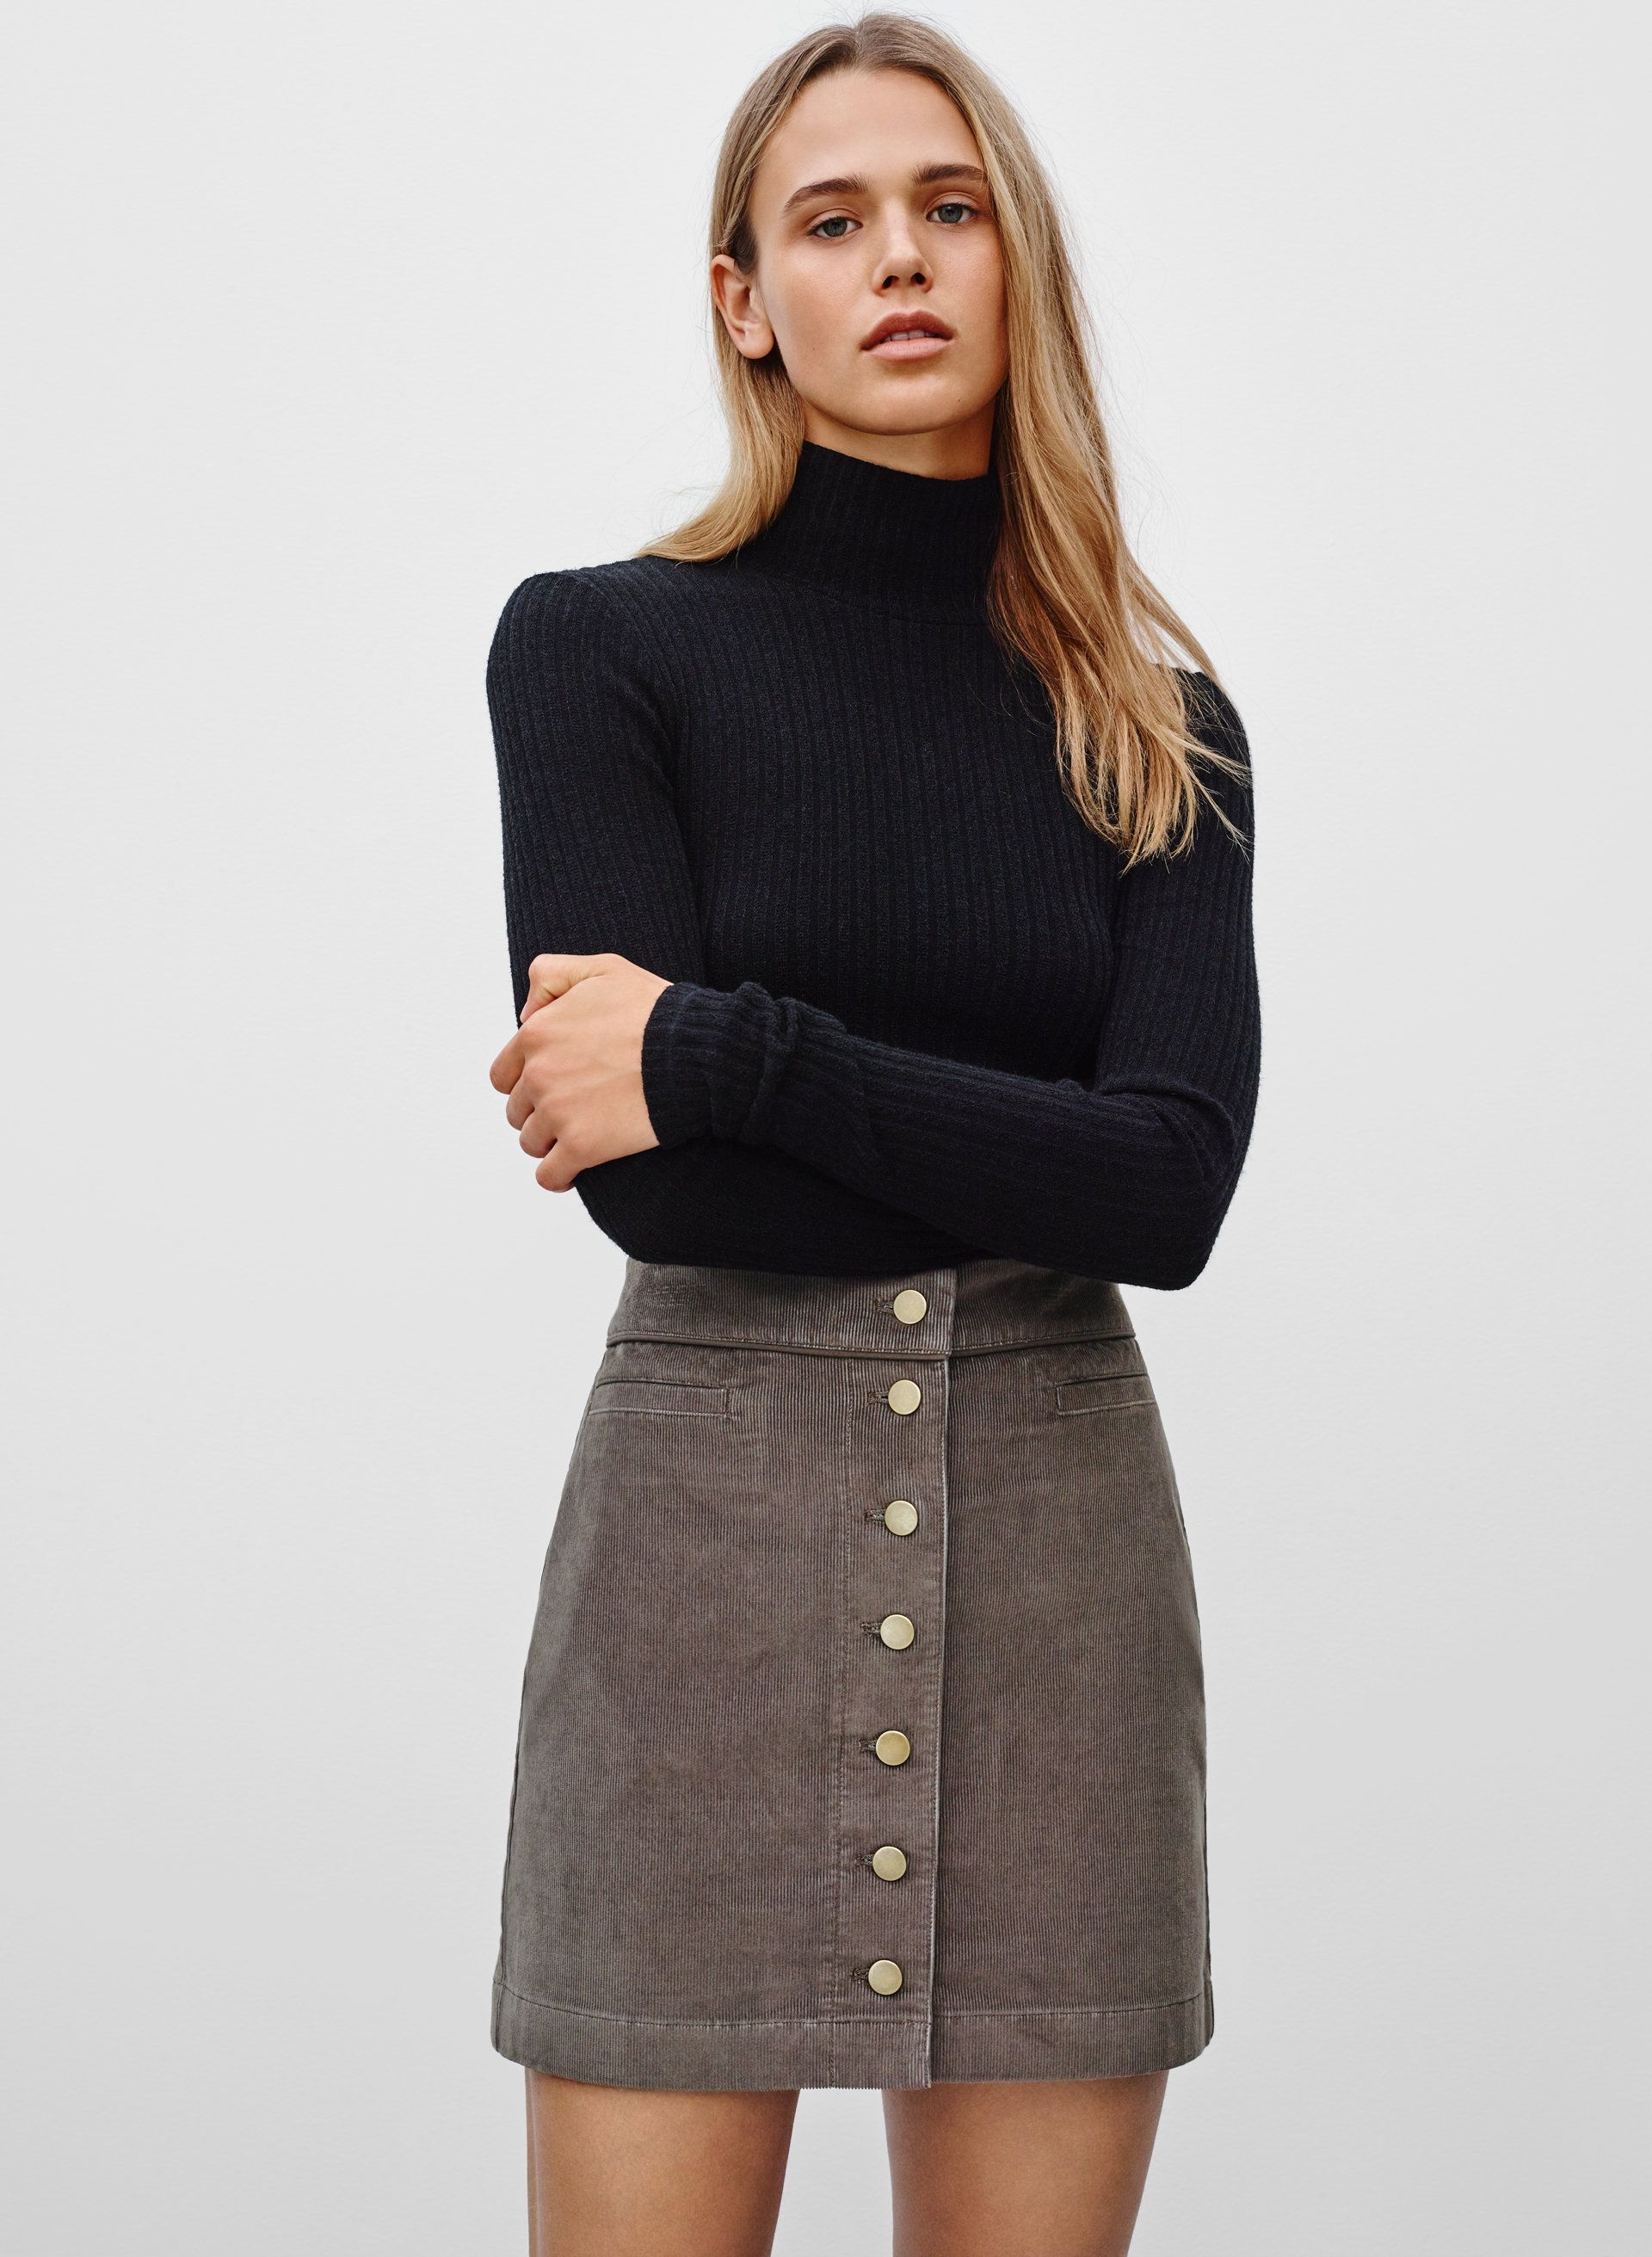 a73cdbe92b Wilfred Free KARMEN SKIRT | Aritzia | Fashion For Women Over 50 ...